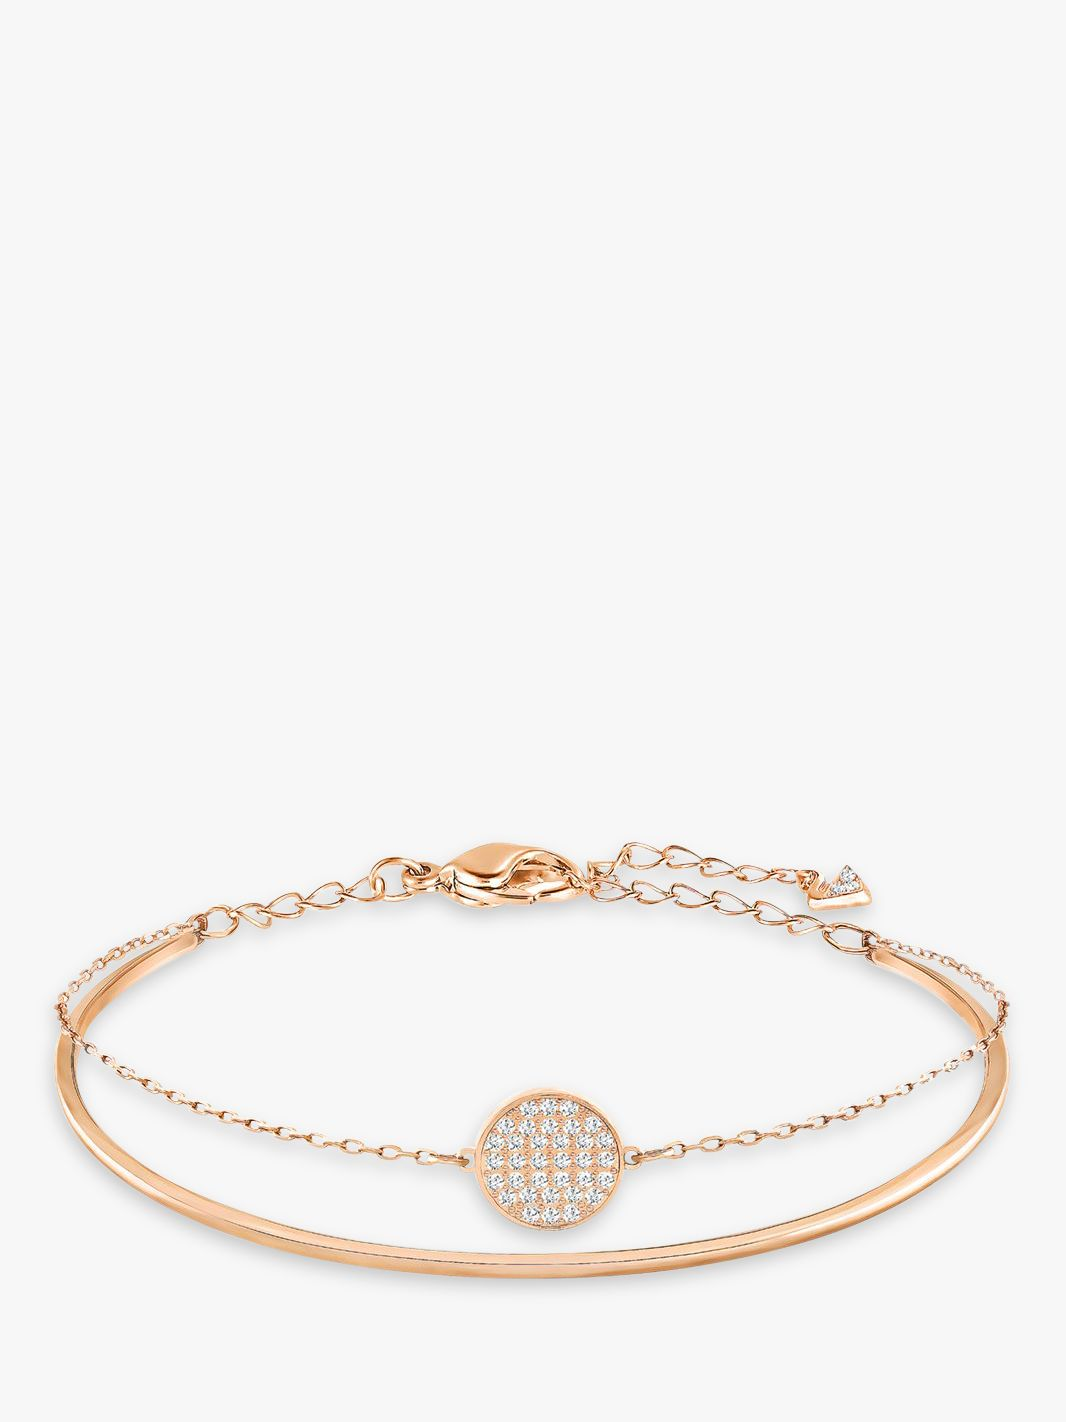 Swarovski Swarovski Romance Crystal Round Charm Bangle, Rose Gold